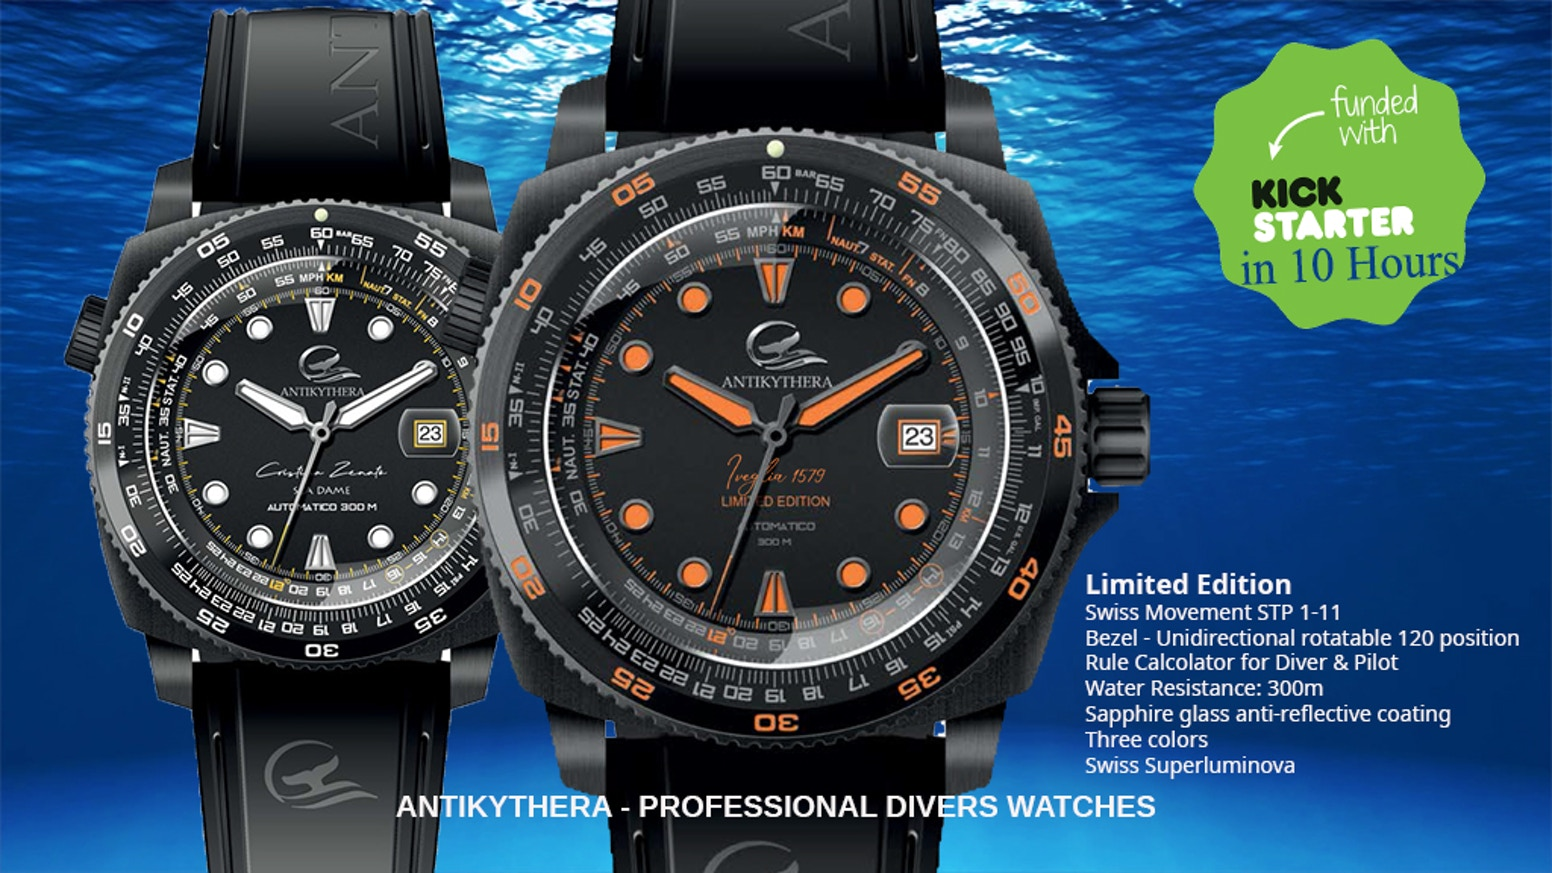 ANTIKYTHERAWATCHES SEA DAME & IVEGLIA 1579Automatic professional diving watch 300 M